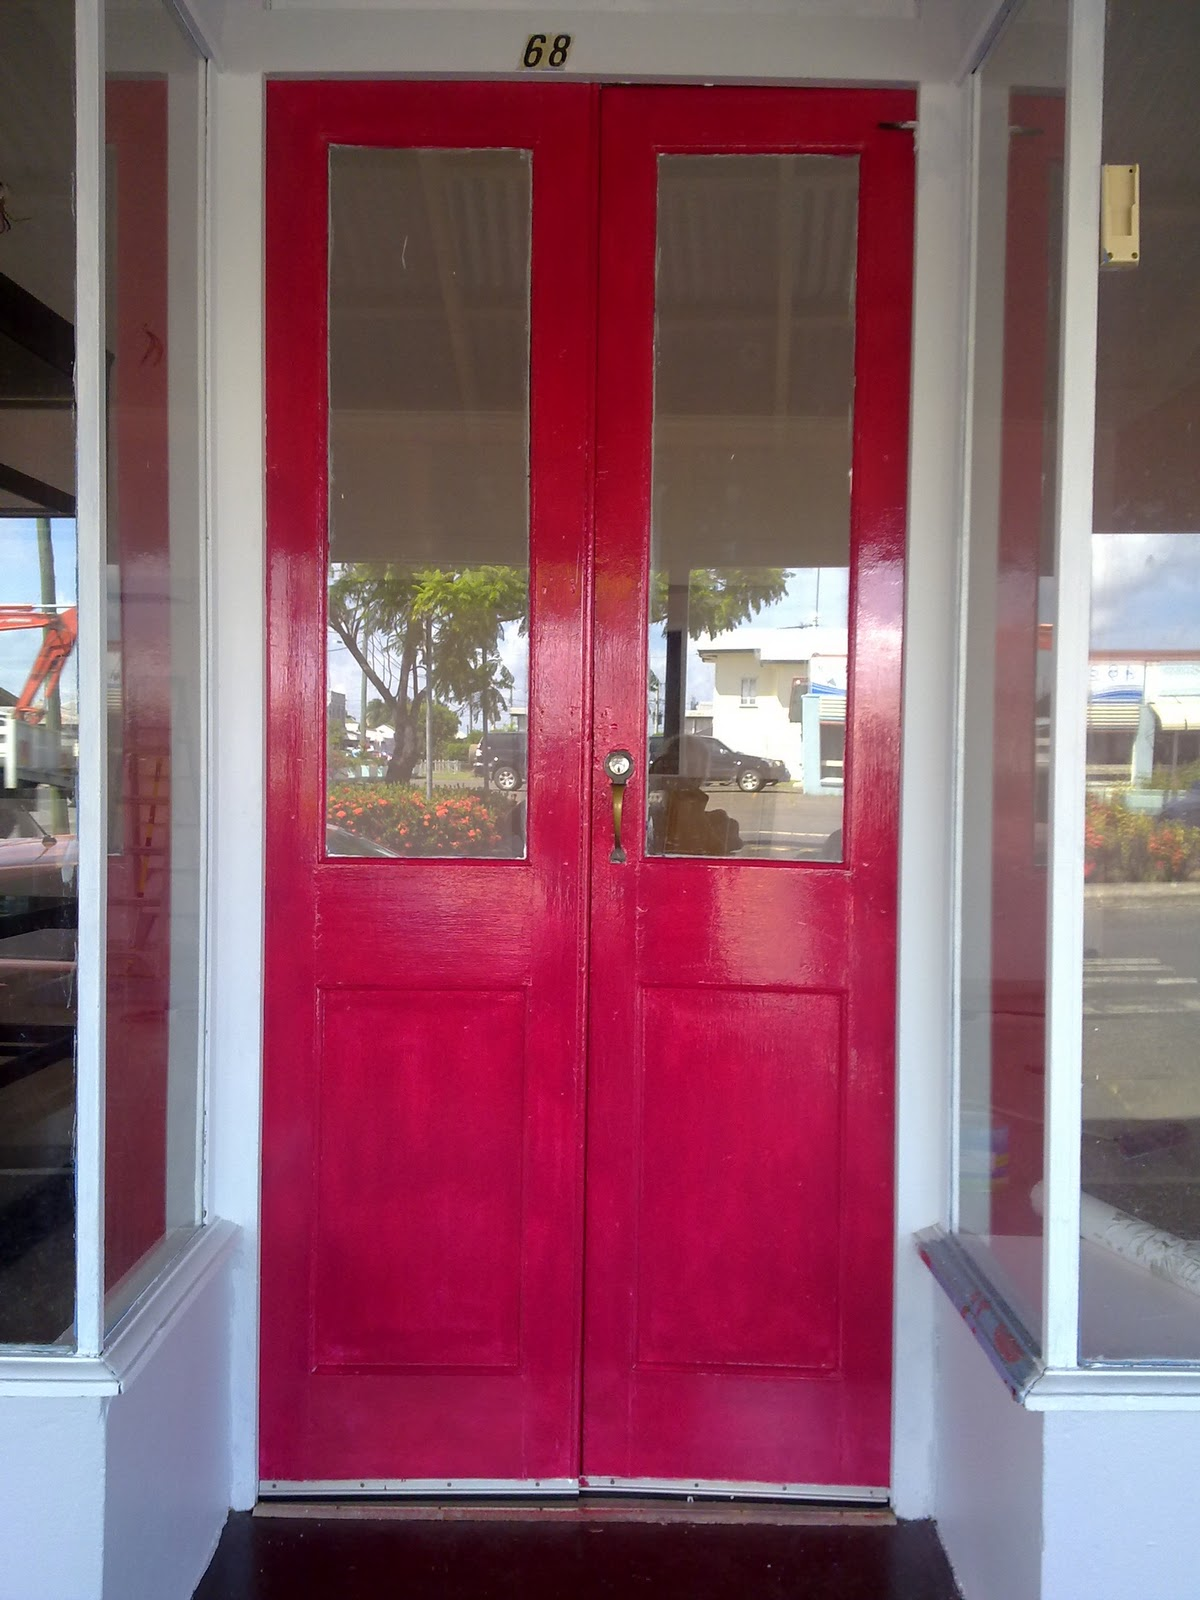 Exquisite Front Entry Doors At Home Depot Fiberglass: Beautiful Interiors And 18th Century Style: Raspberry